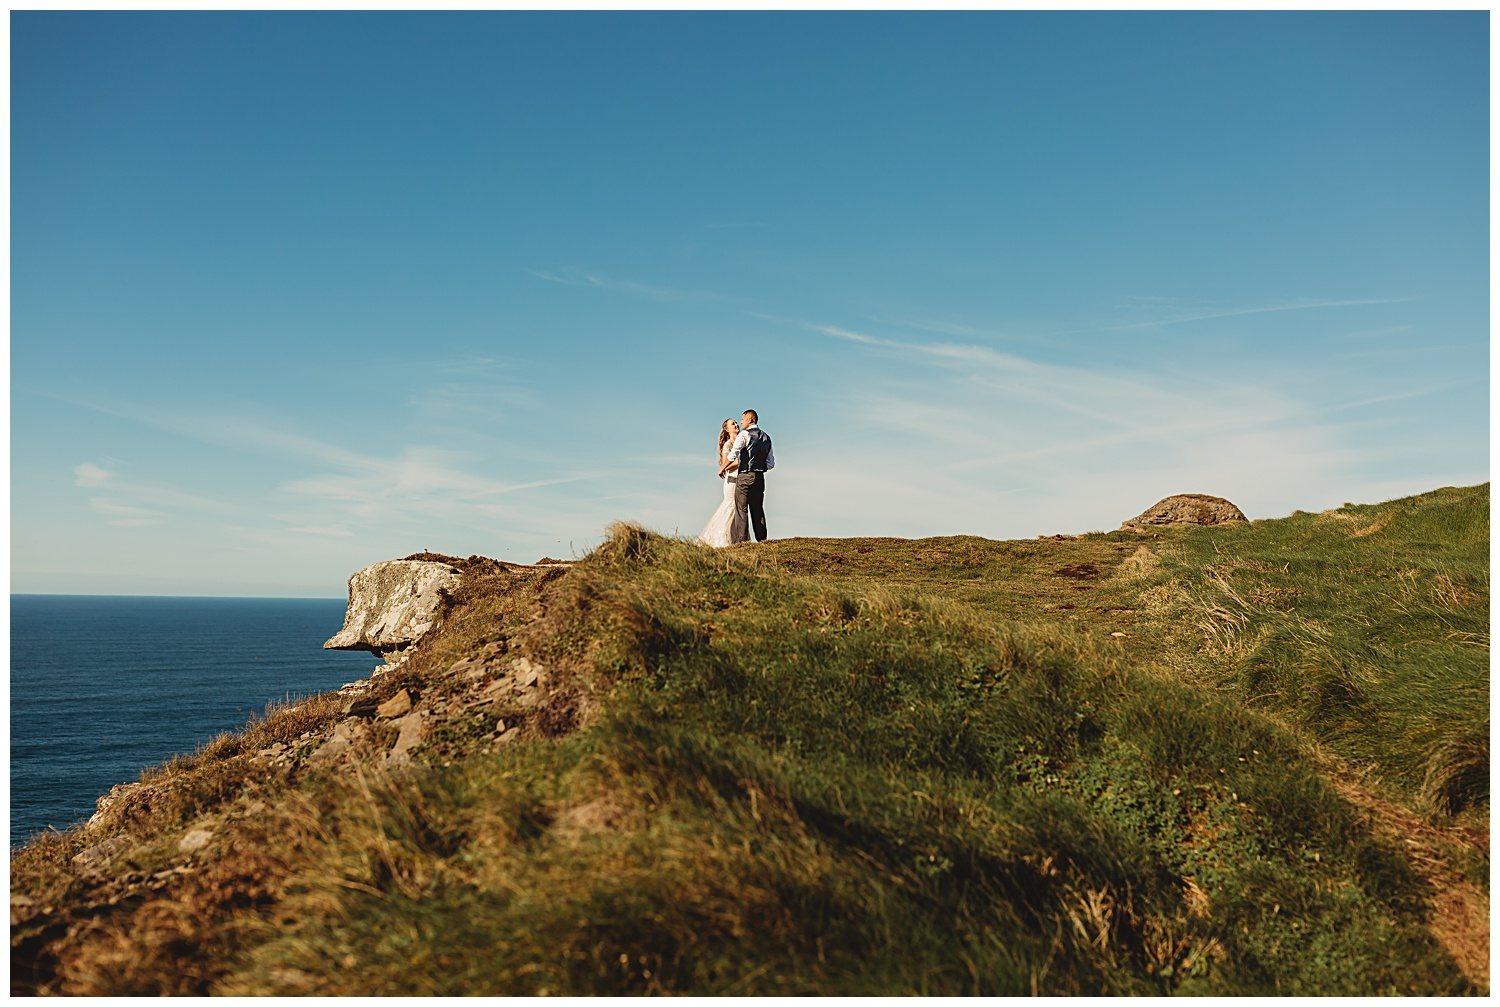 The Cliffs of Moher Destination Wedding Liscannor, County Clare, Ireland_1265.jpg